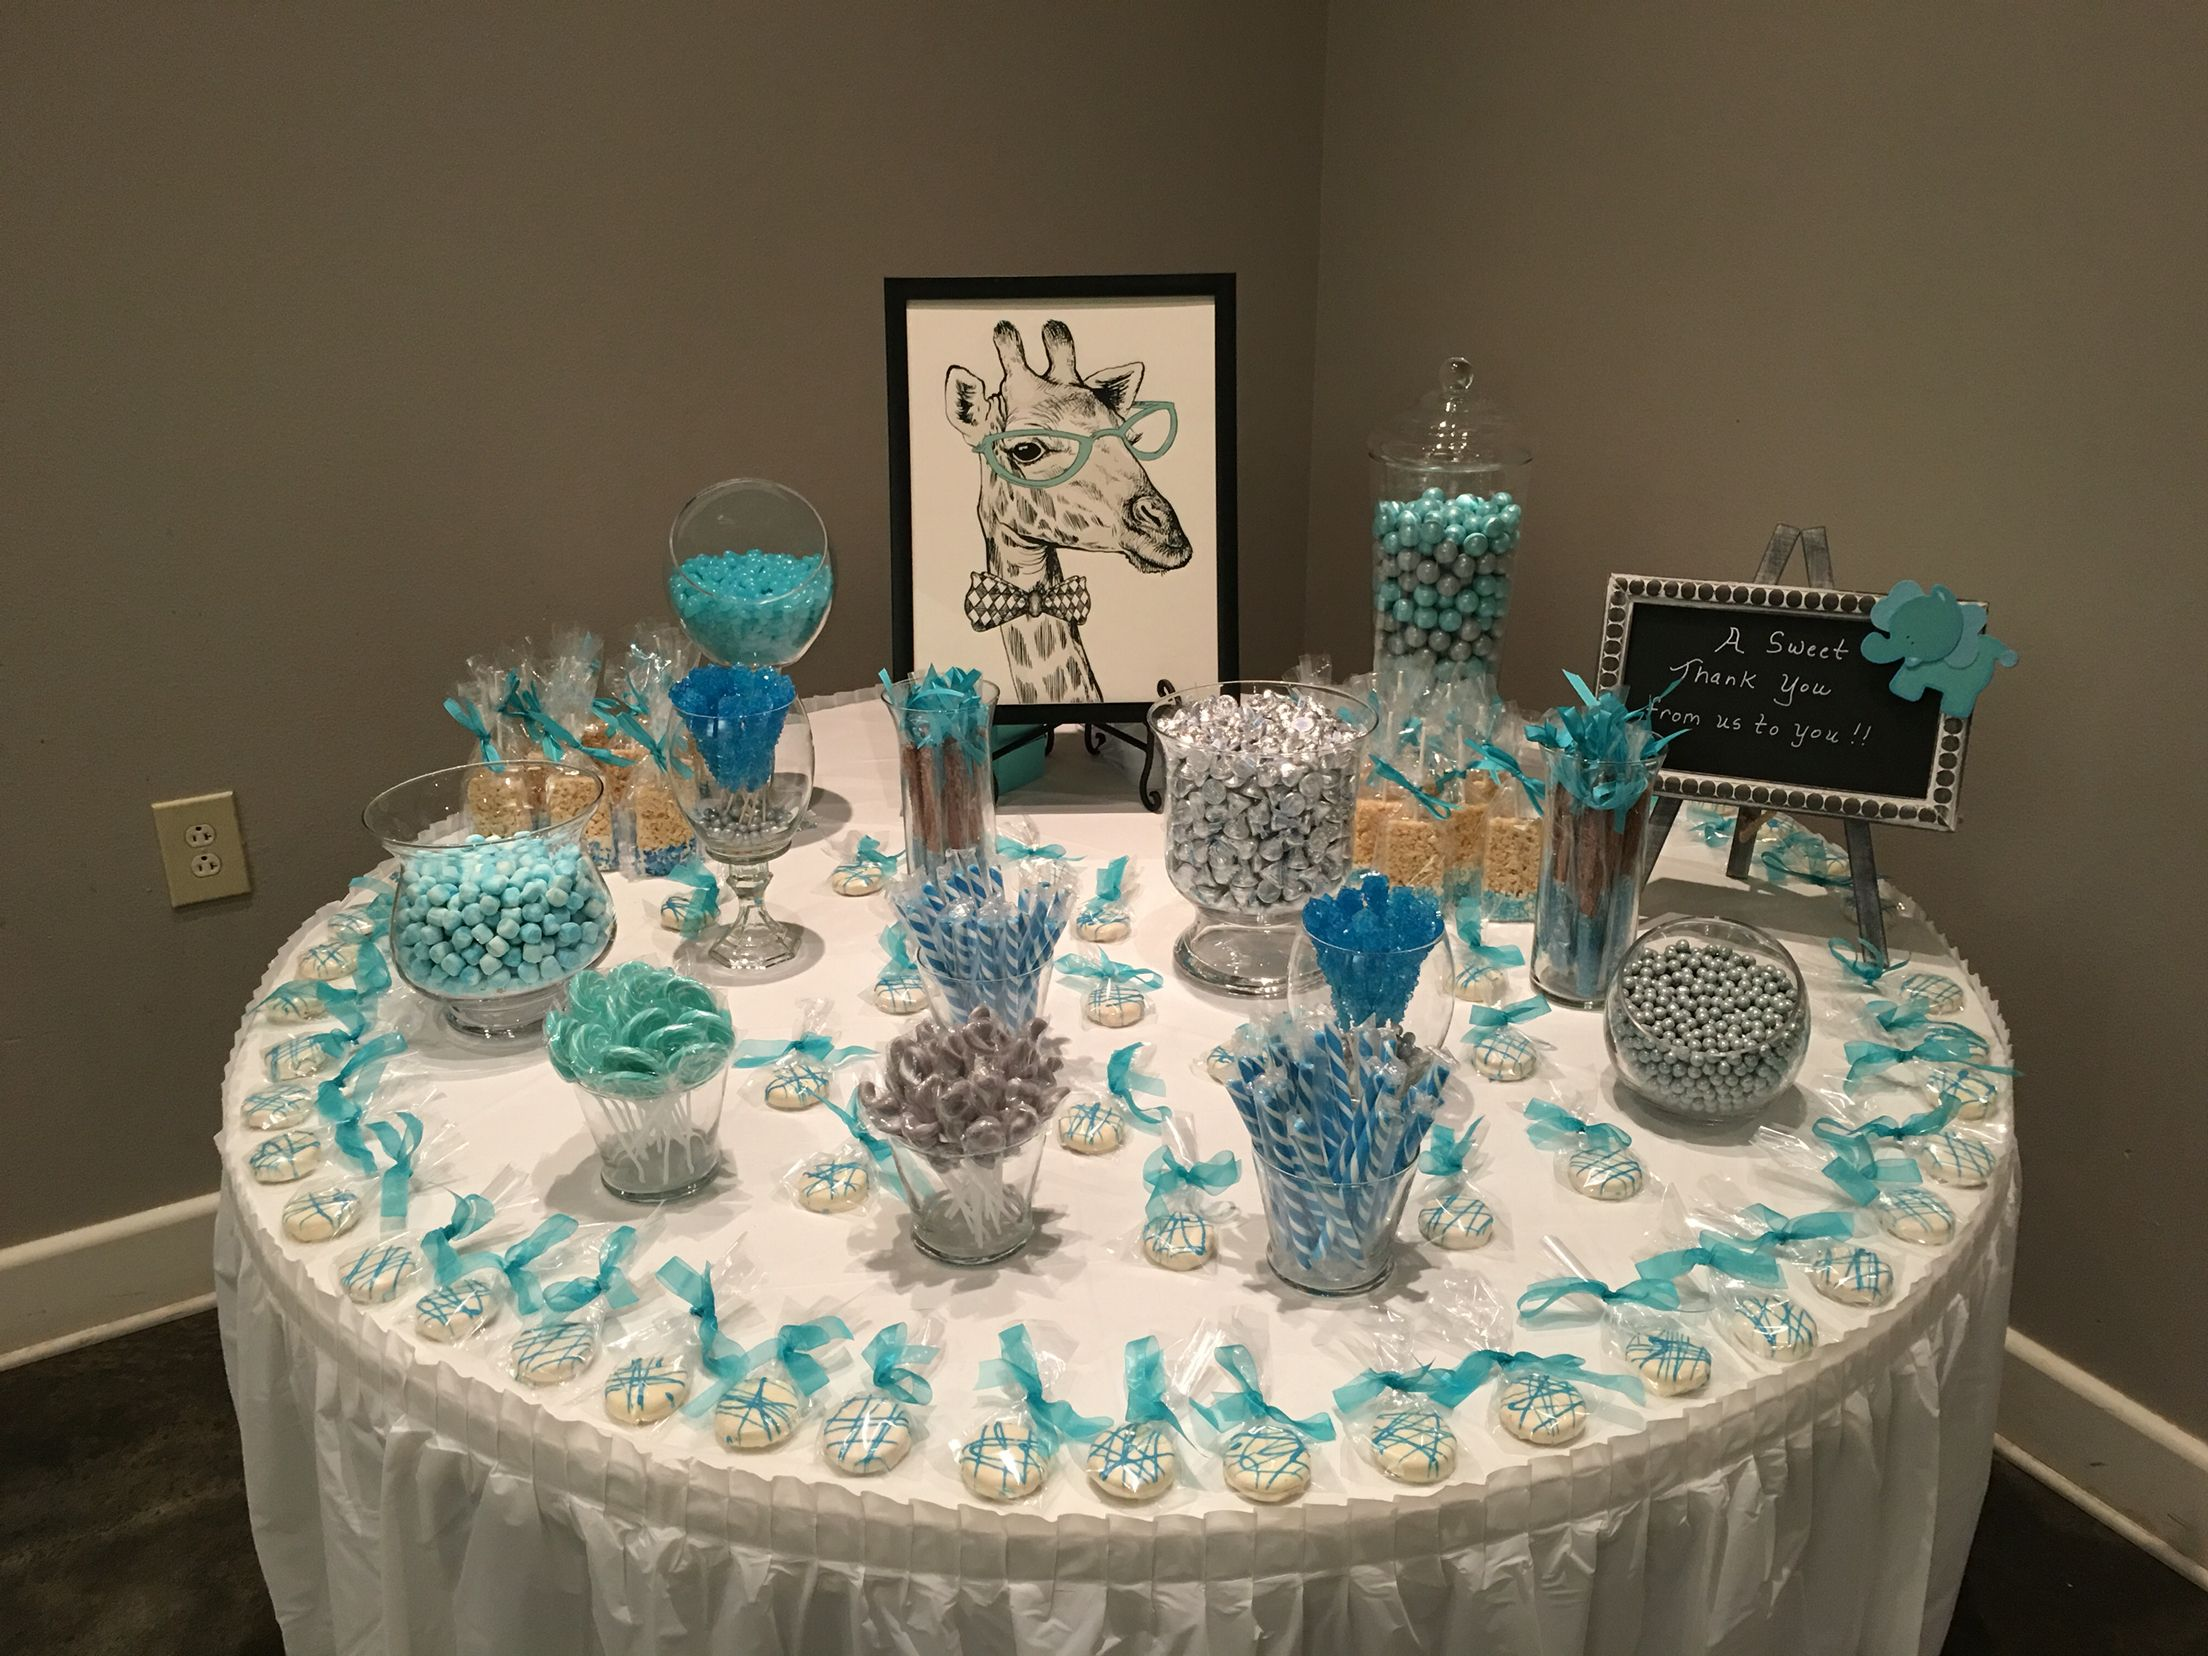 Candy for baby shower ideas